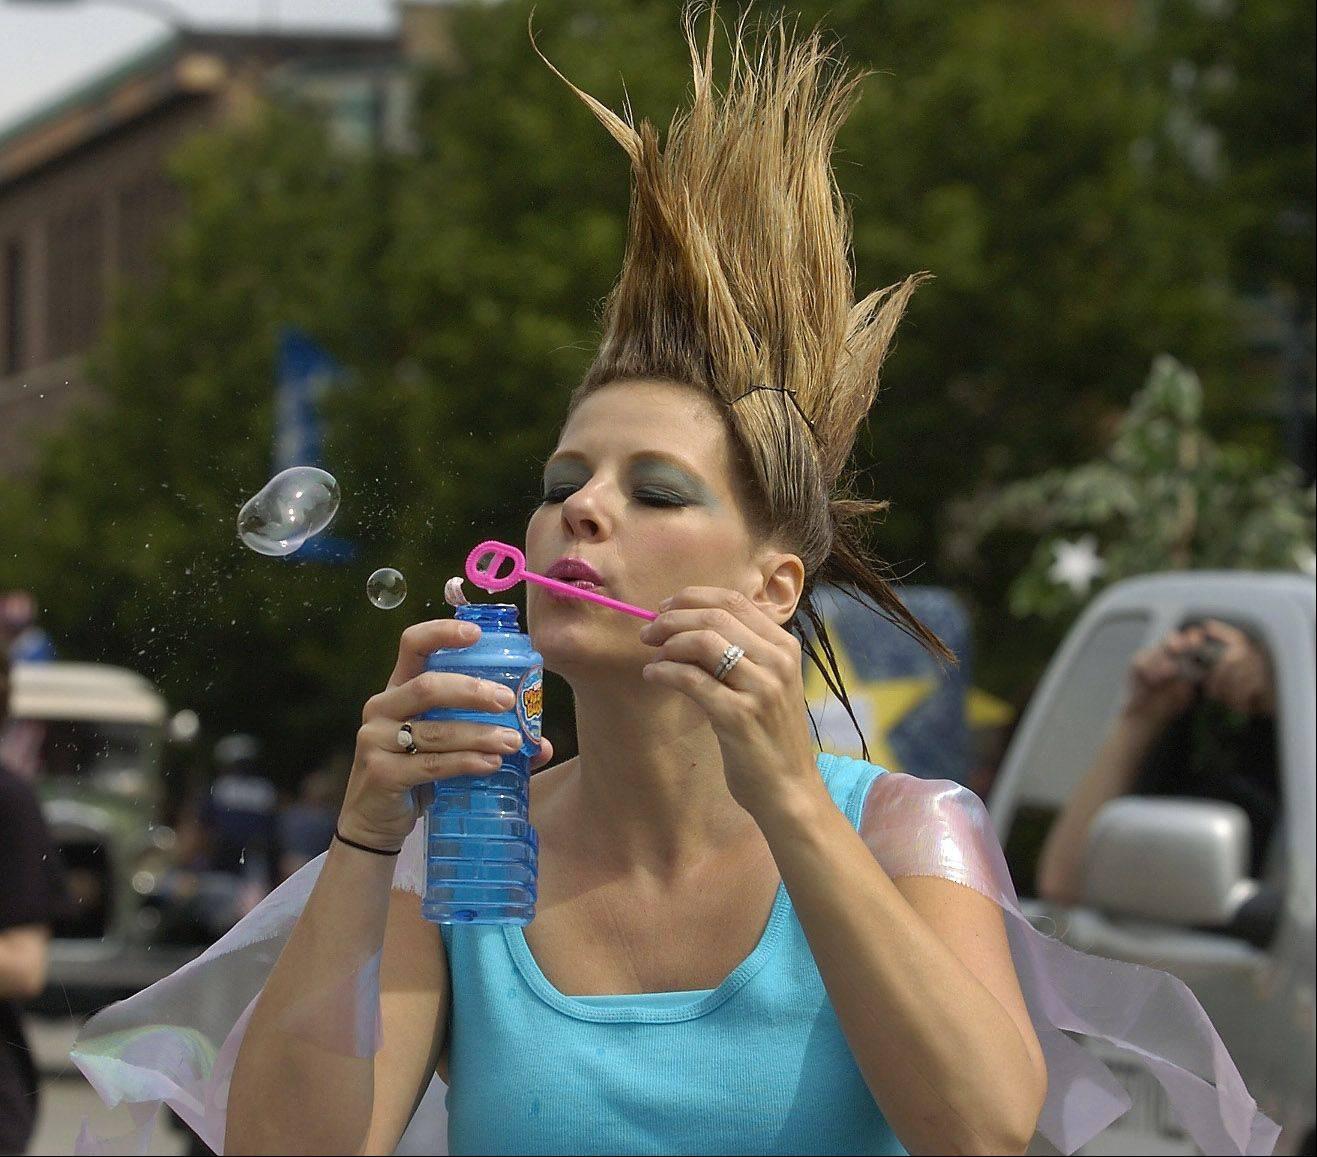 Shelly Malizola of Allure Designs in Beauty, blows bubbles out to parade watchers during the Libertyville Days Parade.